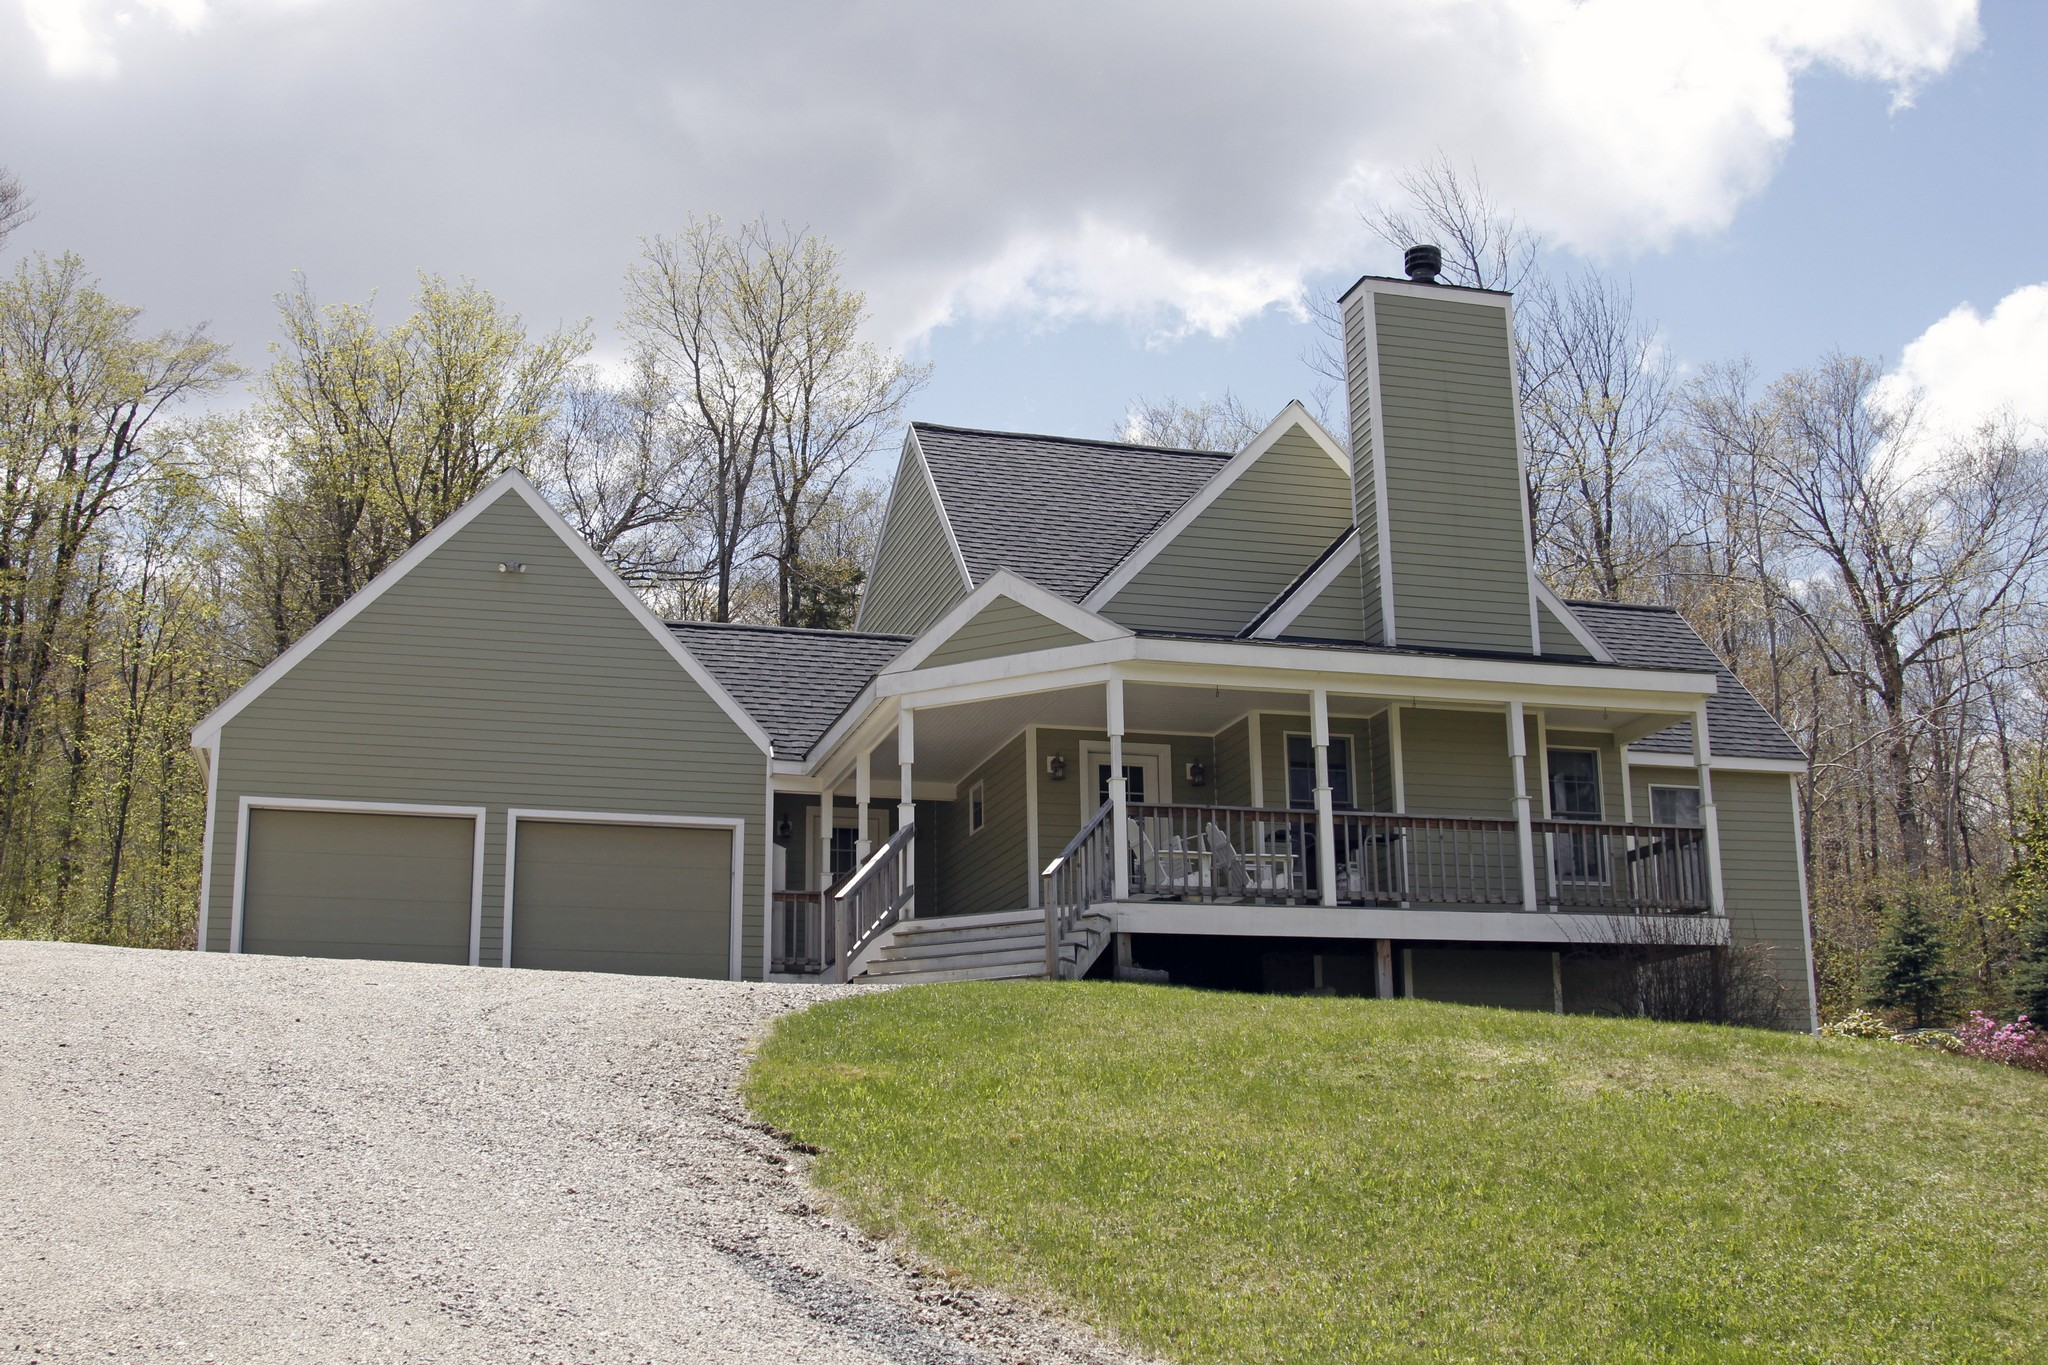 Single Family Home for Sale at 41 Rouges Ridge Rd, Winhall Winhall, Vermont, 05340 United States